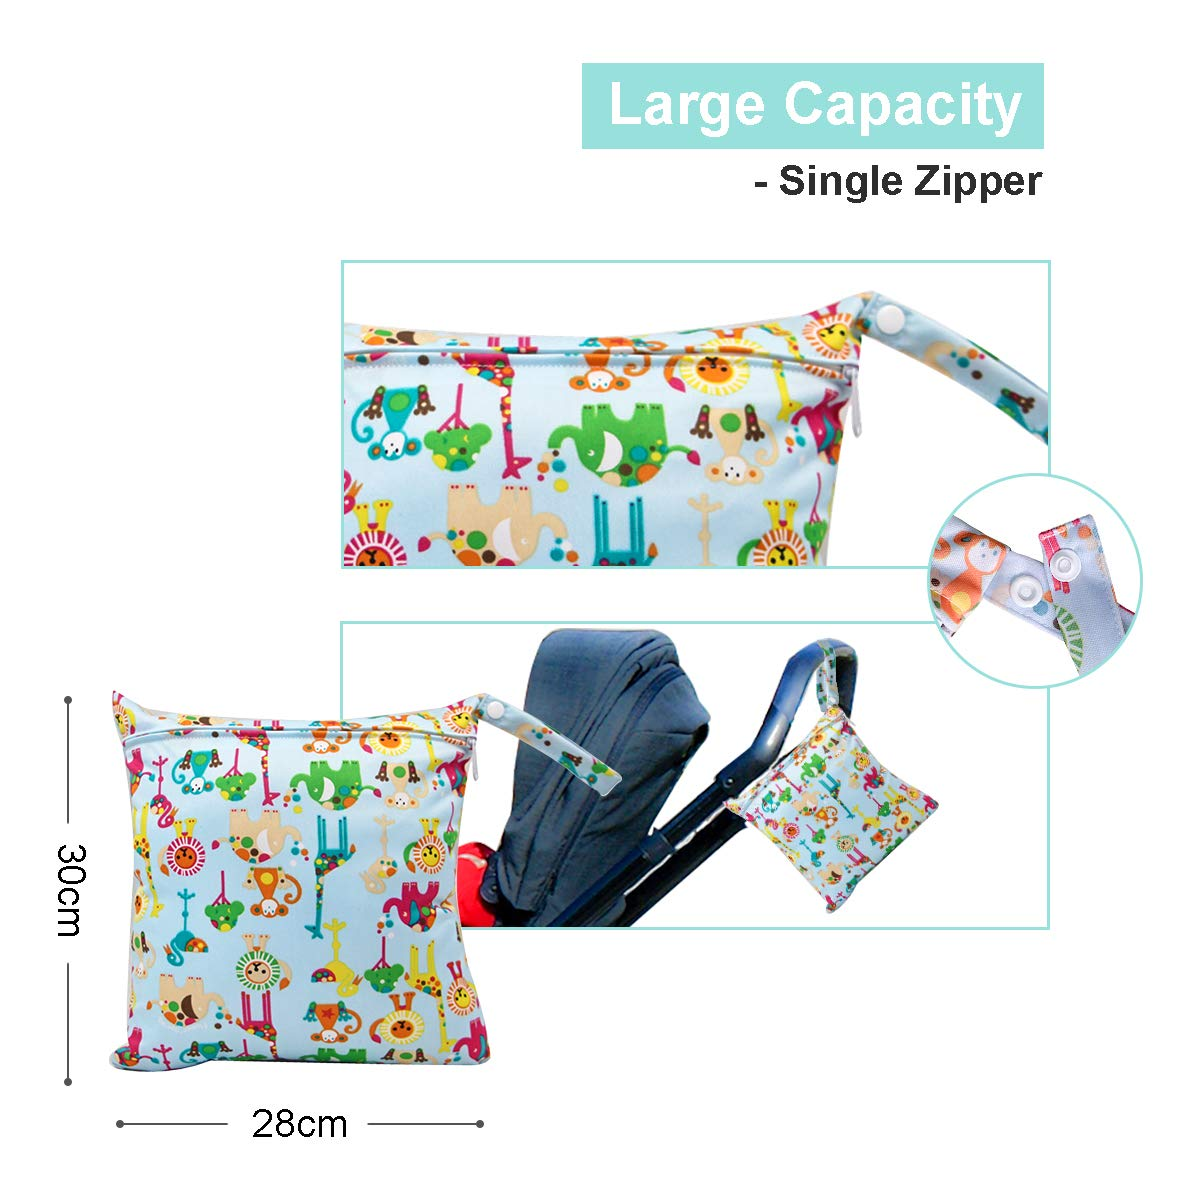 Travel Bag Organiser Waterproof Reusable Produce Bags with Handle and 2 Zipper Pockets HOTLIKE Dry Wet Bag Perfect Gift for Trip Beach Daycare Gym Diapers Wet Bag Blue 3 PCS Nappy Bag for Cloth